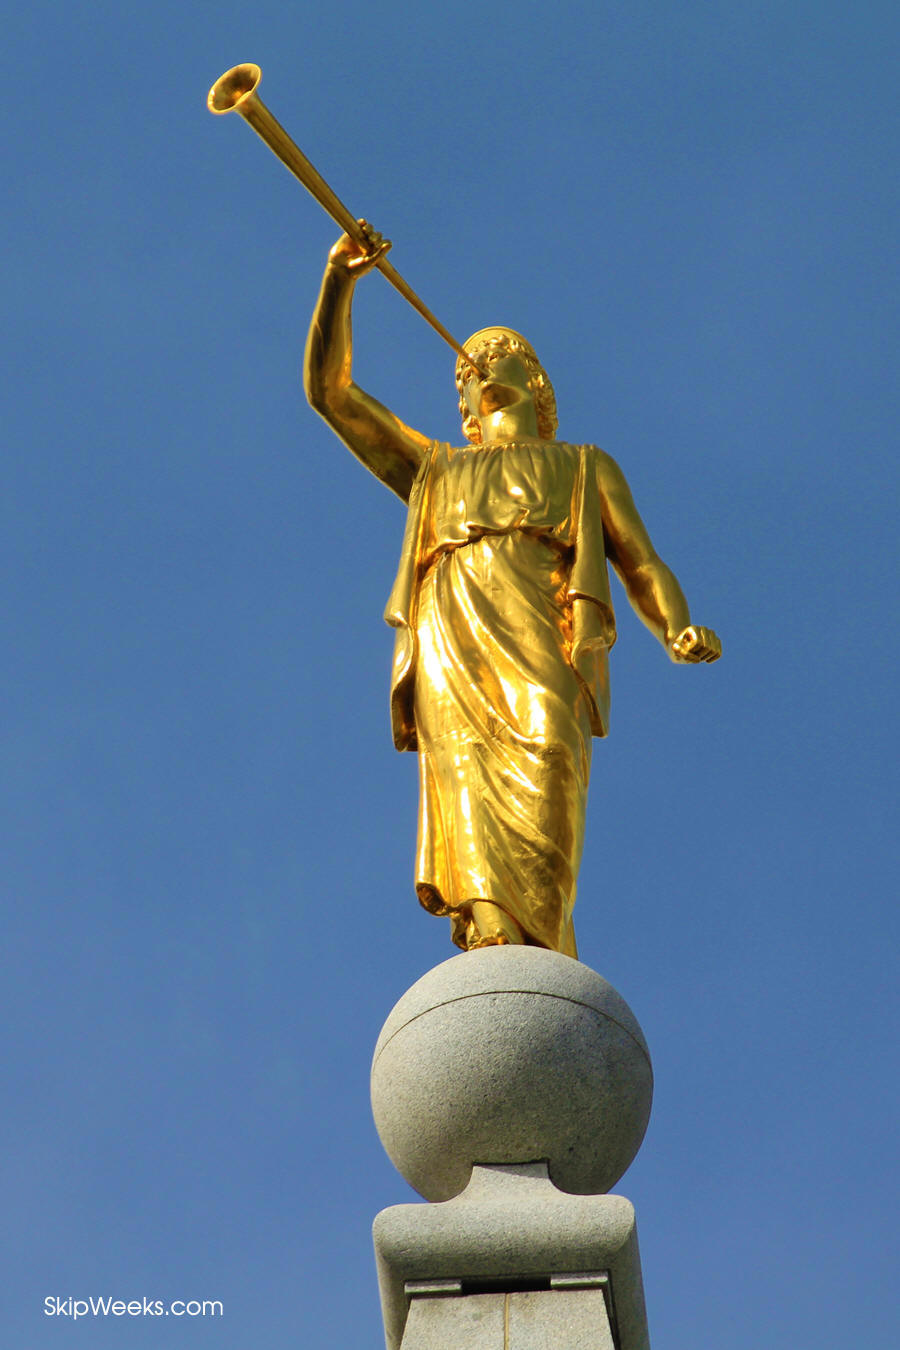 The statue of Moroni, the first of its kind, welcomes visitors into the city.